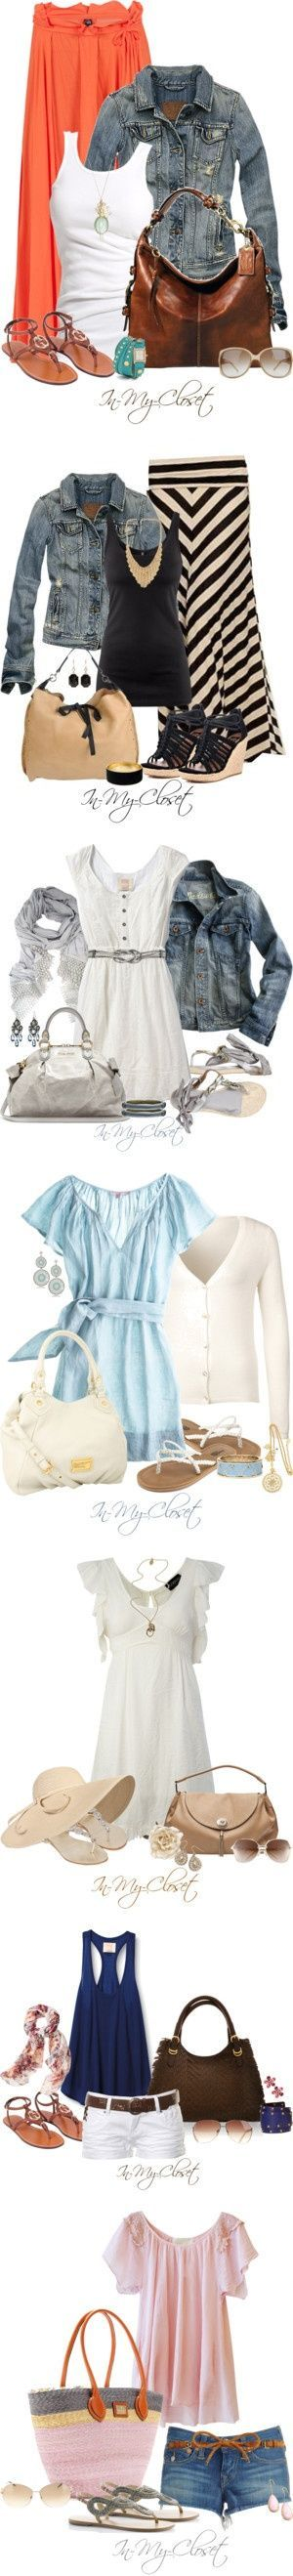 Summer#summer clothes style #my summer clothes #cute summer outfits| http://summerclothesstyle.hana.lemoncoin.org